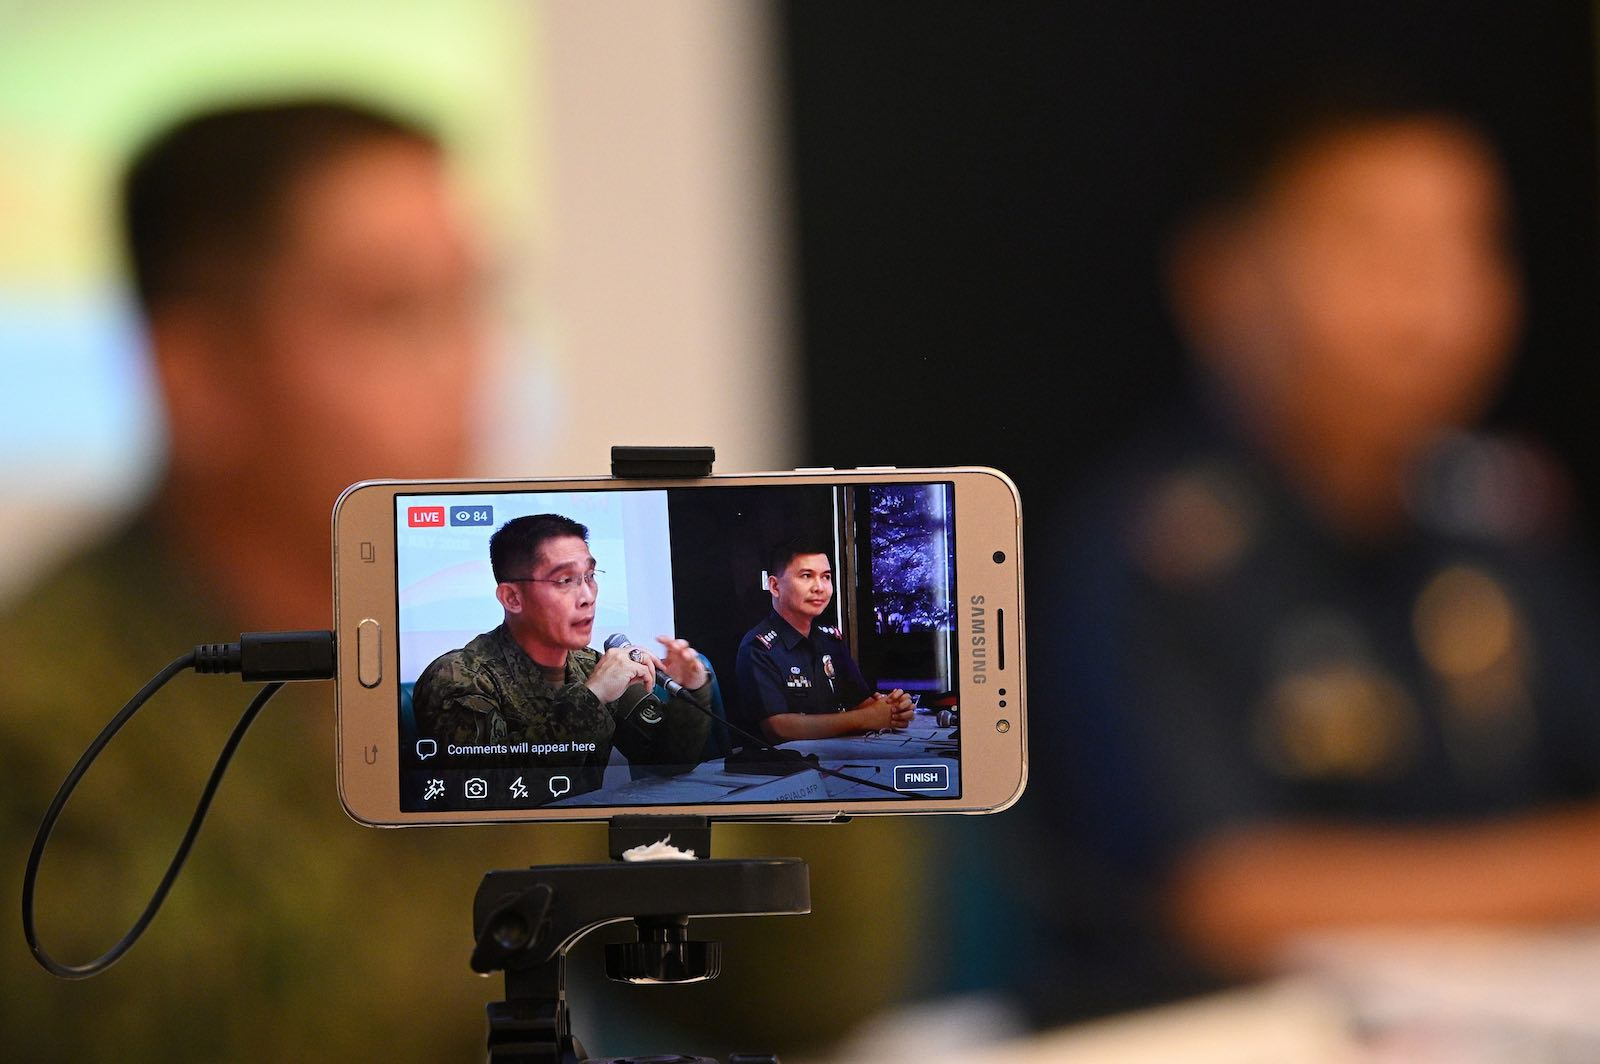 Philippine security personnel brief the media on investigations following a June bombing (Photo: Ted Aljibe via Getty)